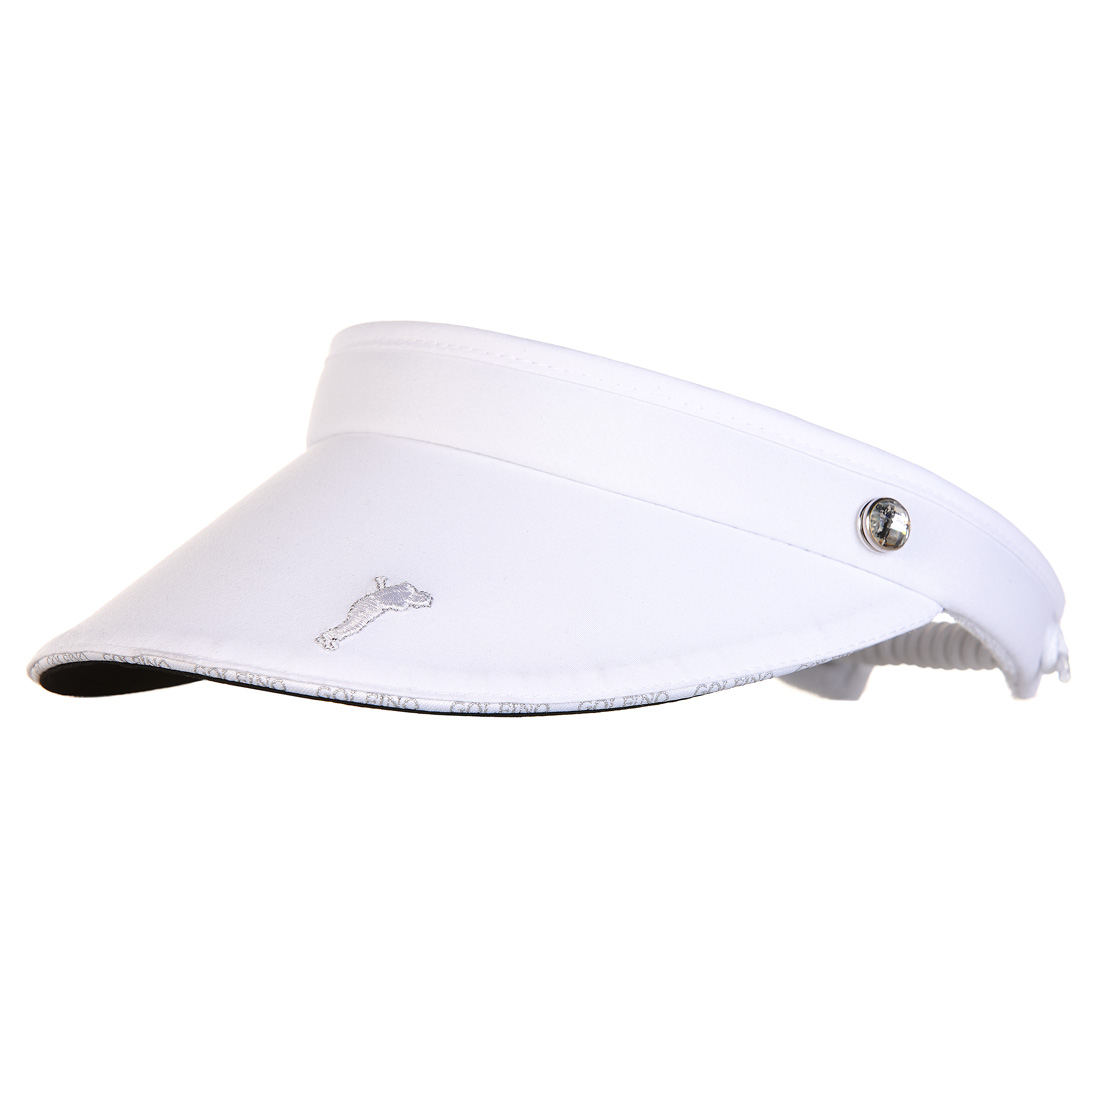 Ladies' golf visor